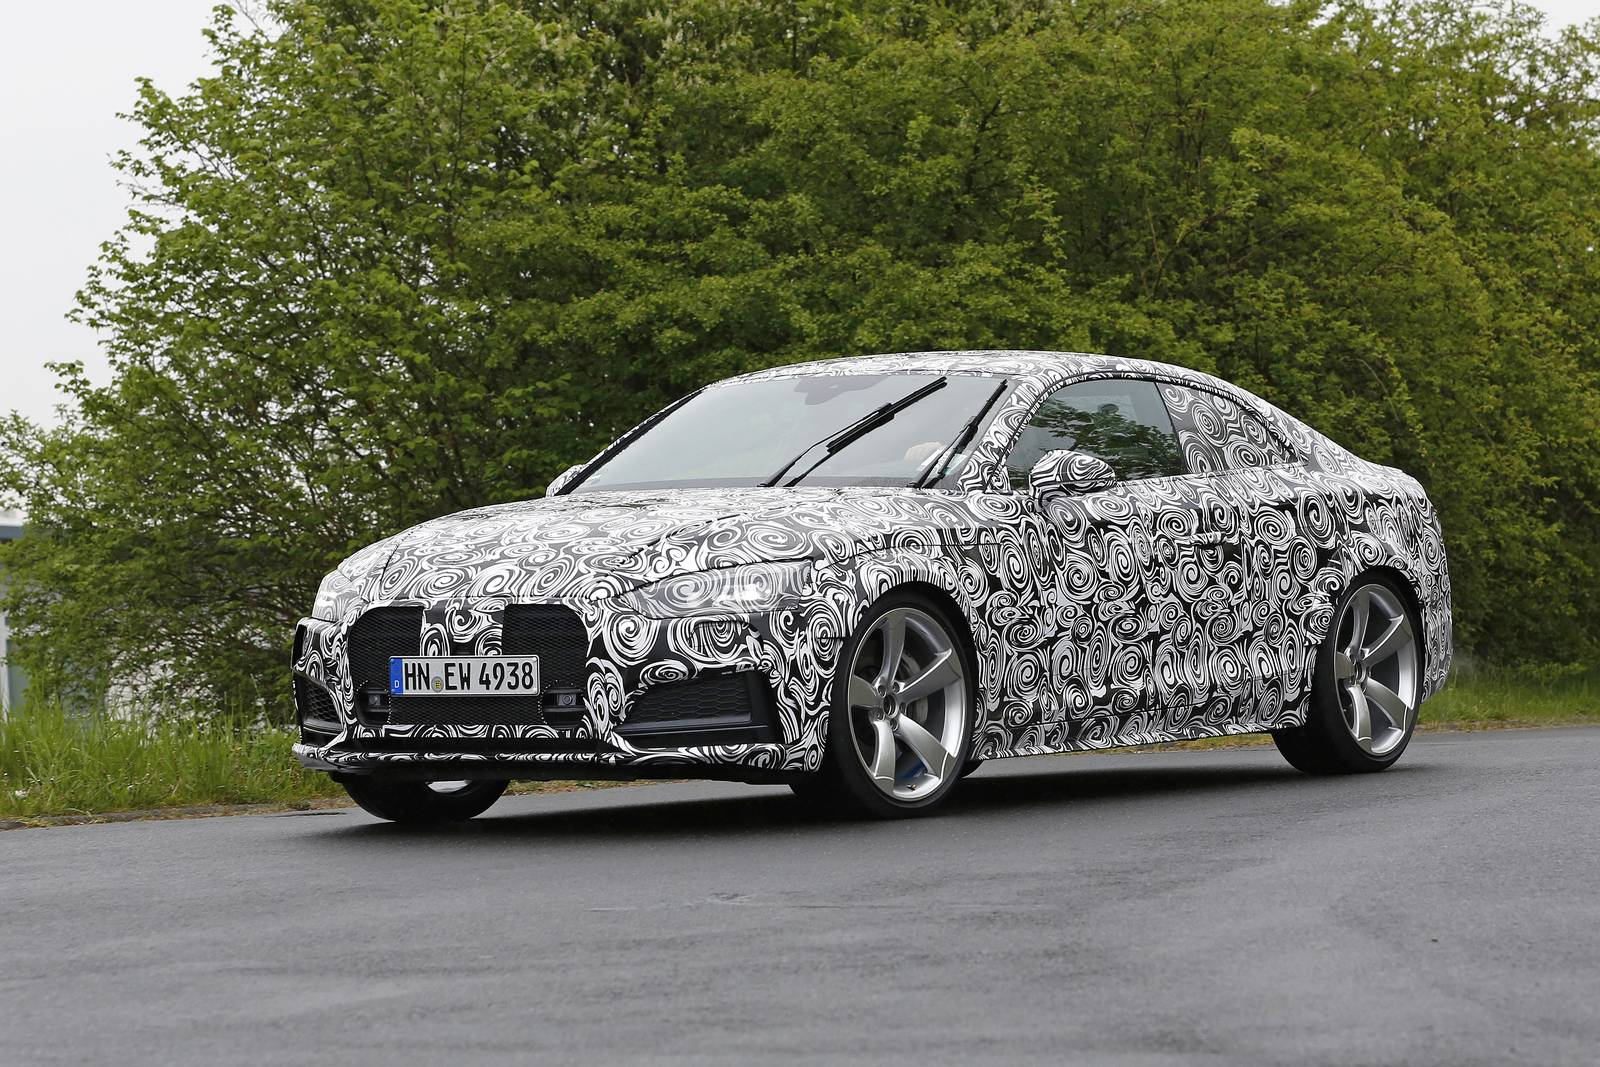 2018 audi rs5 first test mule spy shots gtspirit. Black Bedroom Furniture Sets. Home Design Ideas